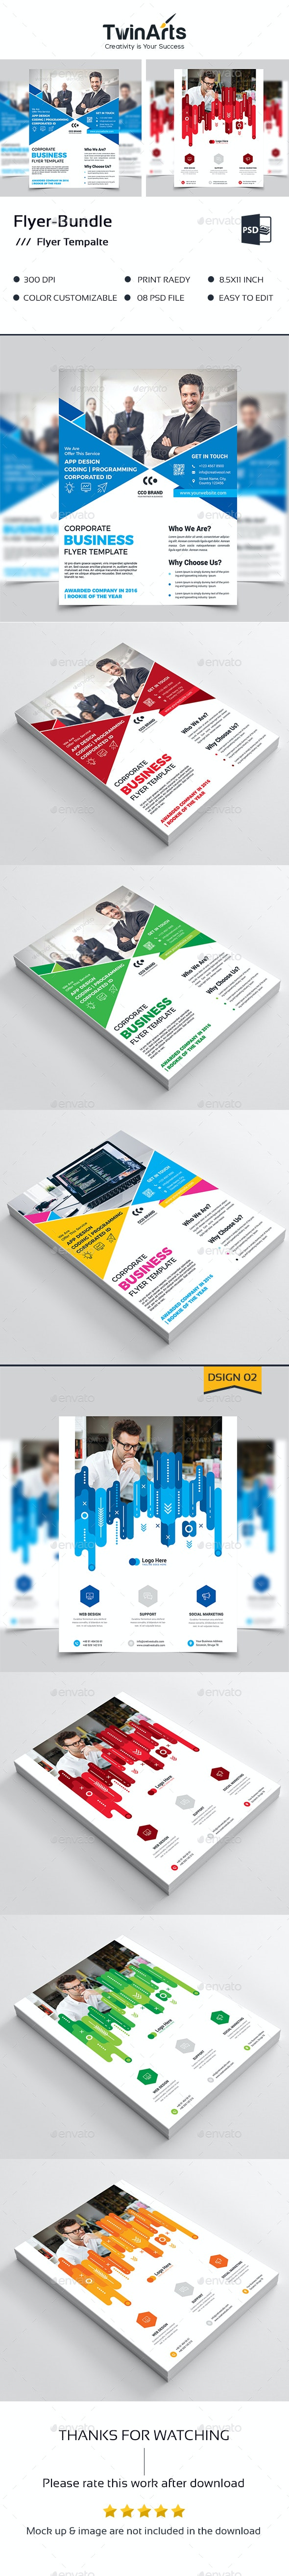 Flyer Bundle_2 in 1 - Flyers Print Templates